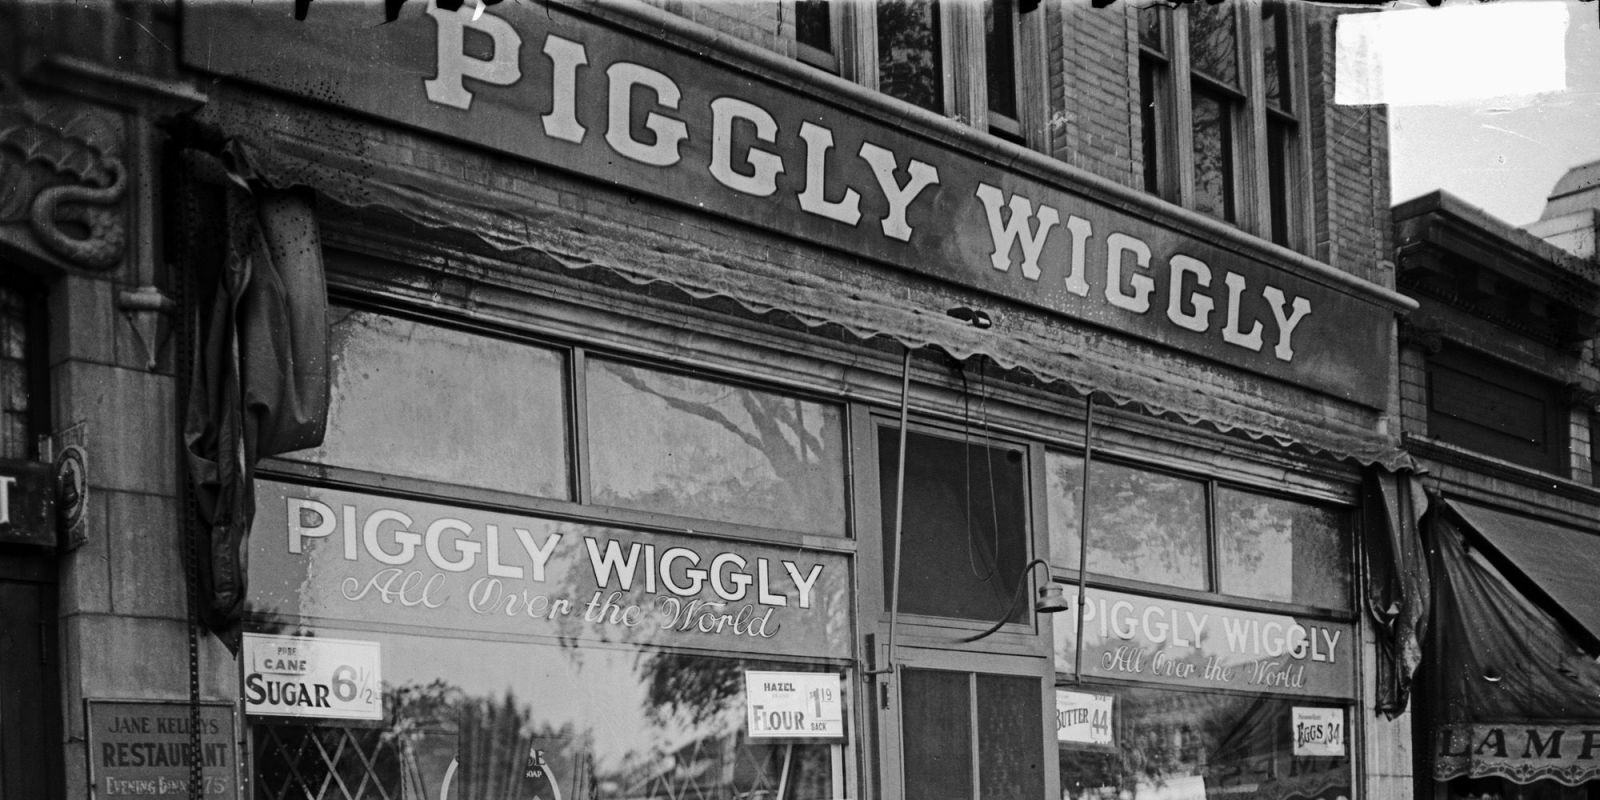 9 Things You Didn't Know About Piggly Wiggly - Facts About Piggly Wiggly